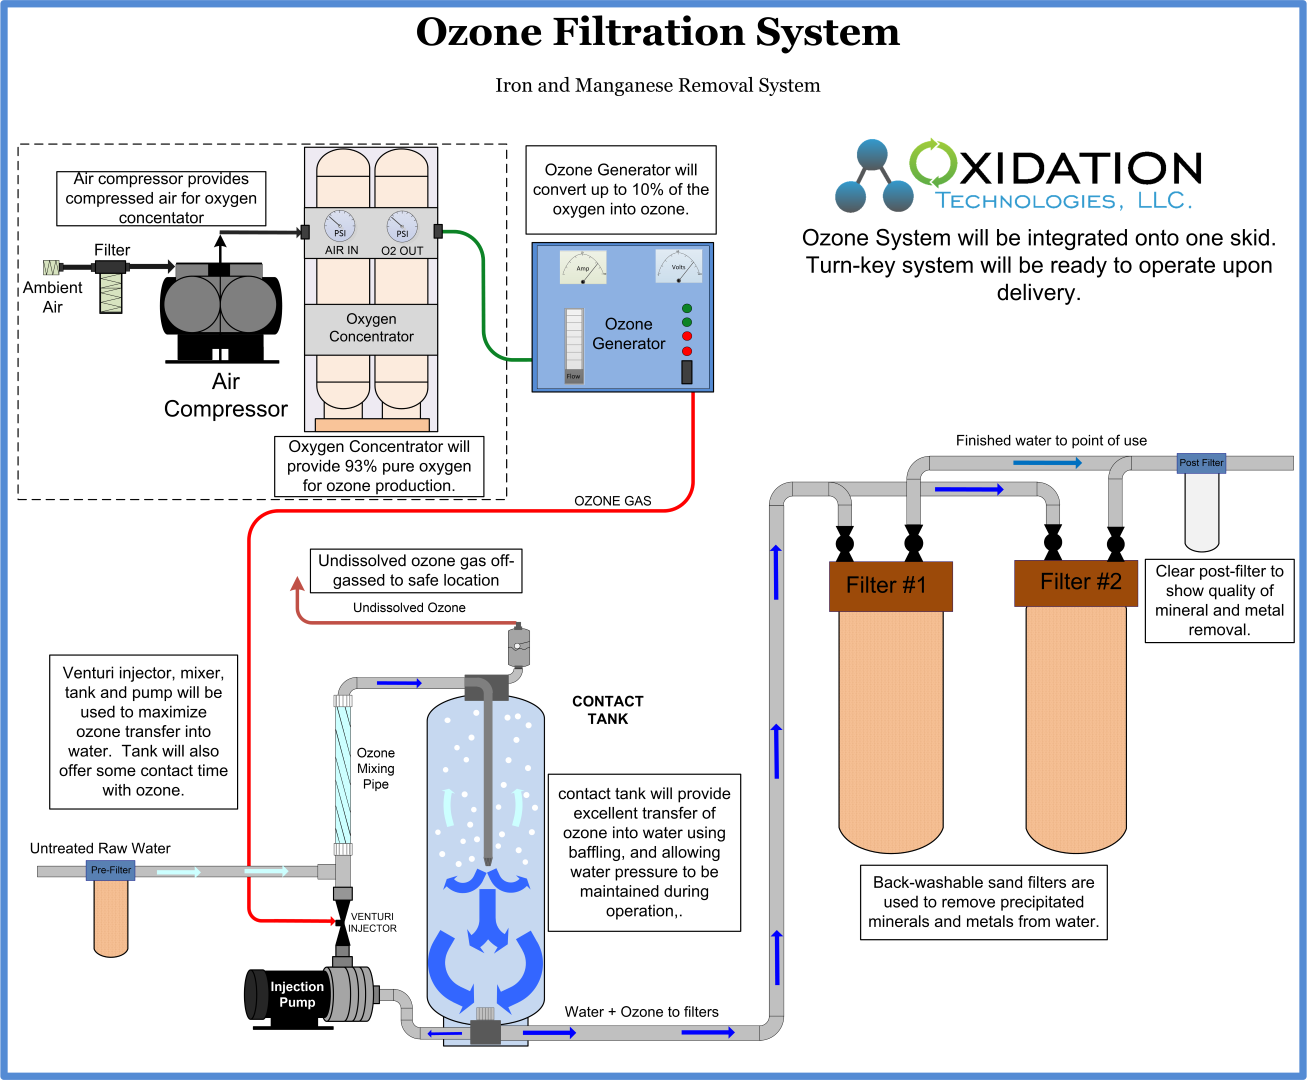 Ozone Injection and filtration system Ozone filtration system diagram